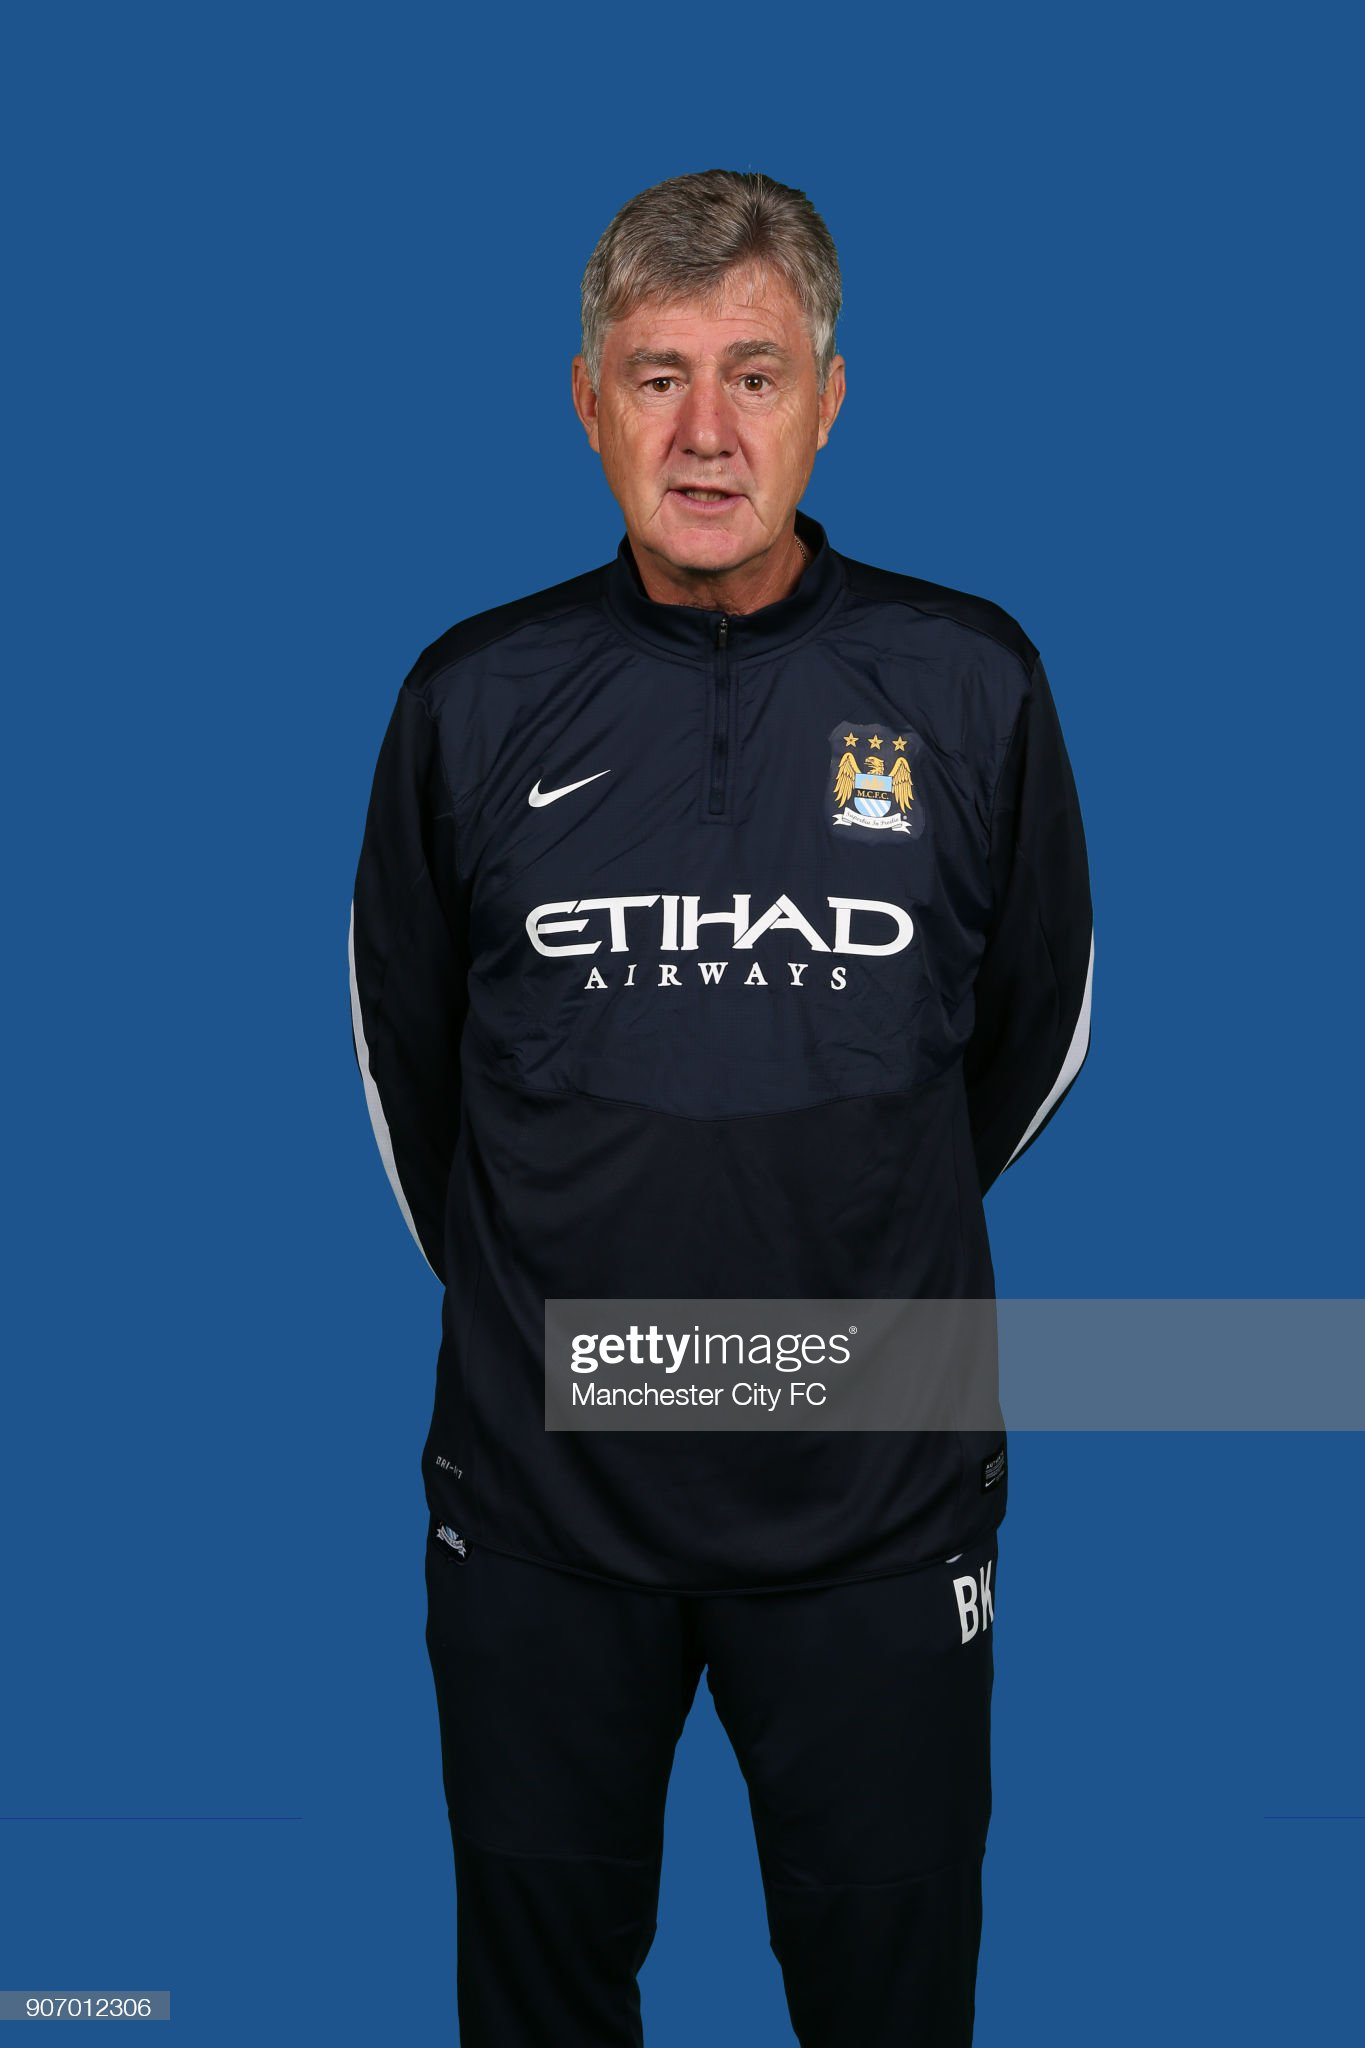 https://media.gettyimages.com/photos/manchester-city-photocall-201314-season-manchester-citys-assistant-picture-id907012306?s=2048x2048